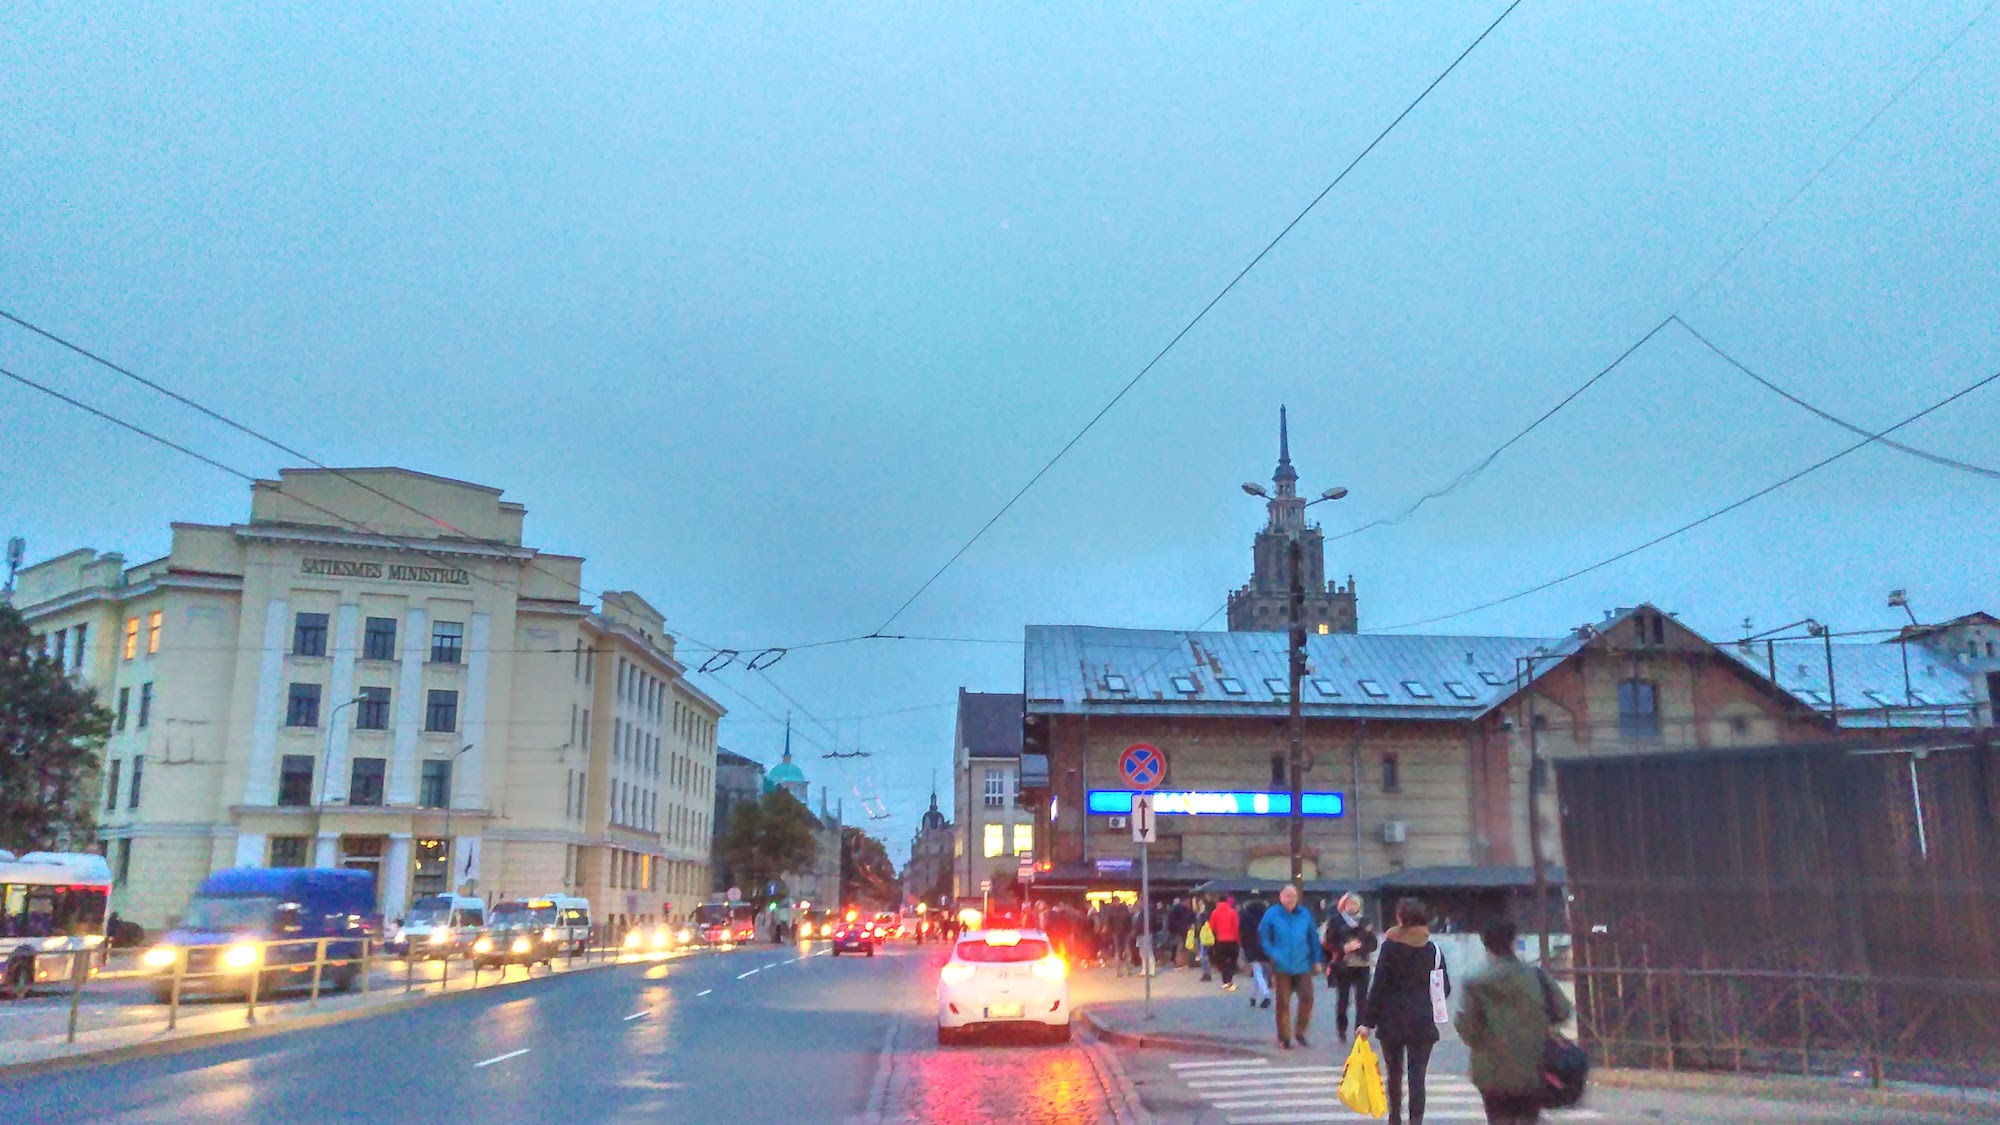 The border with Center neighborhood ends with Riga central market